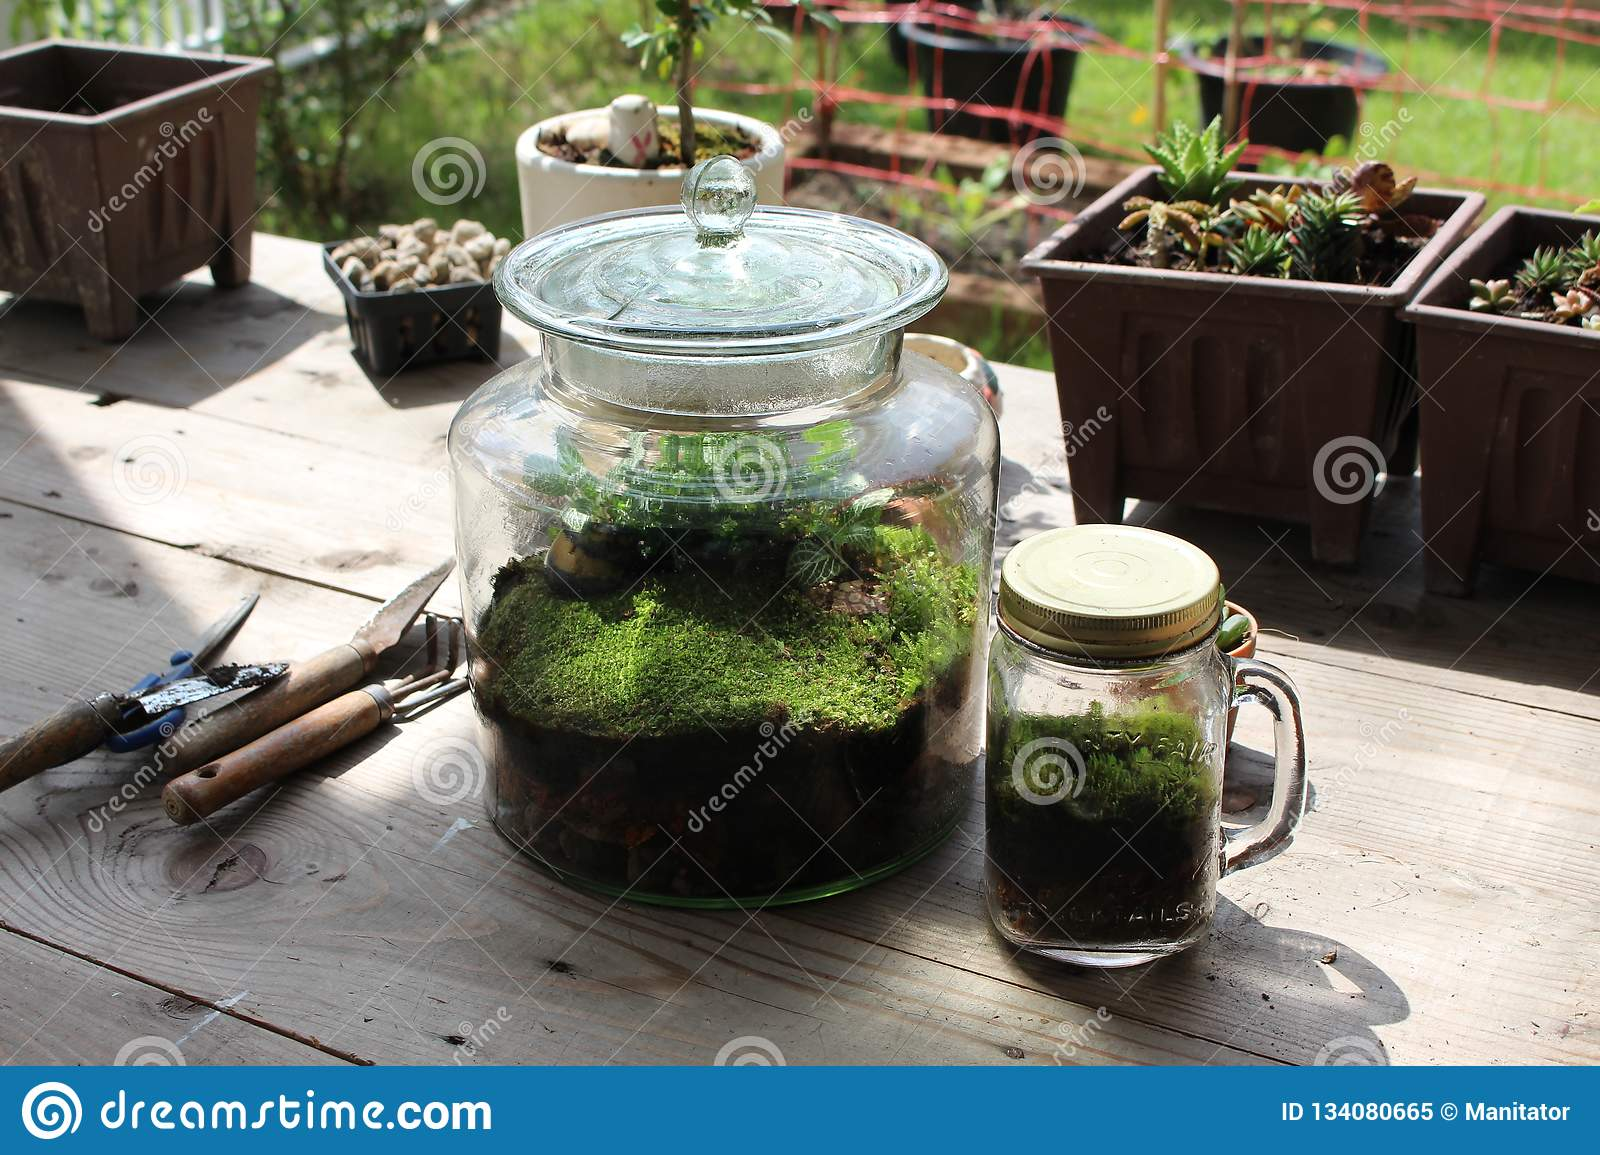 Clear Glass Jar Of Terrarium With Moss And Plant Stock Image Image Of Cute Fresh 134080665